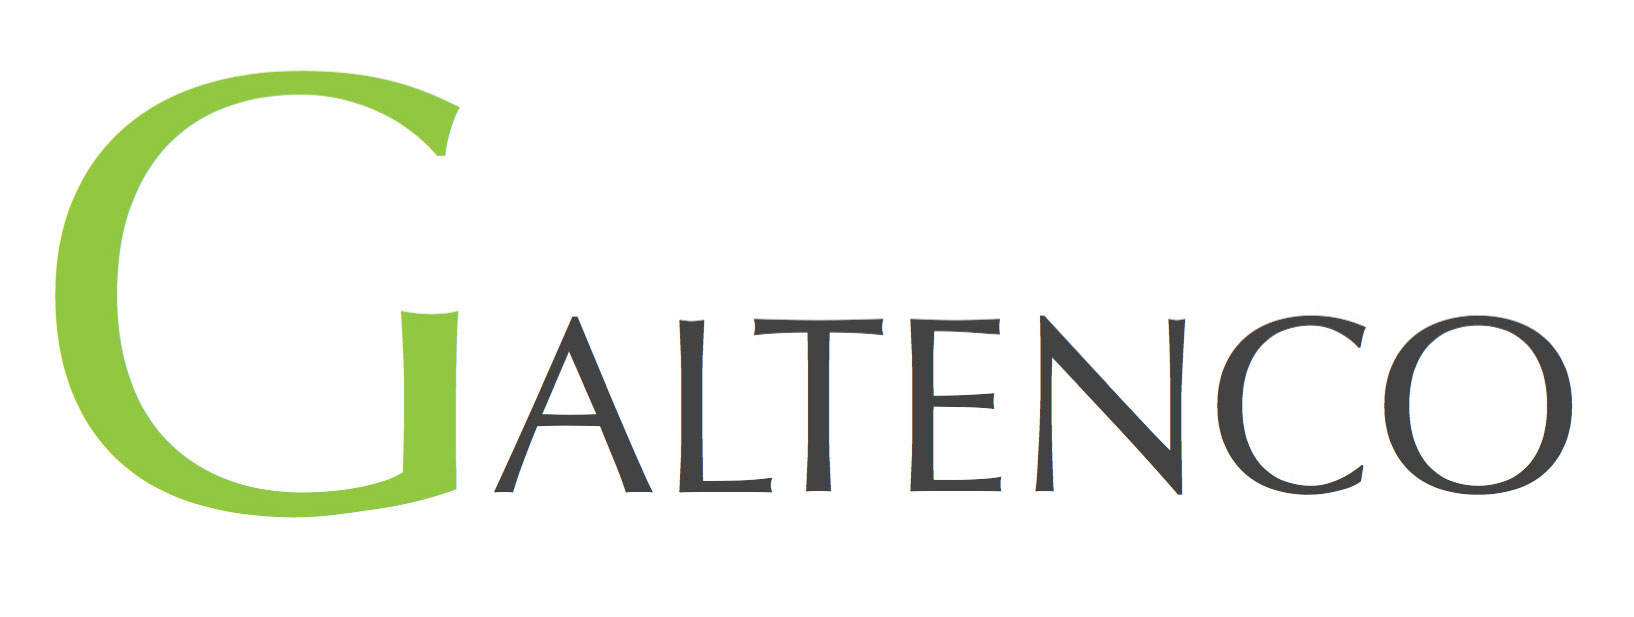 Galtenco Axel'one